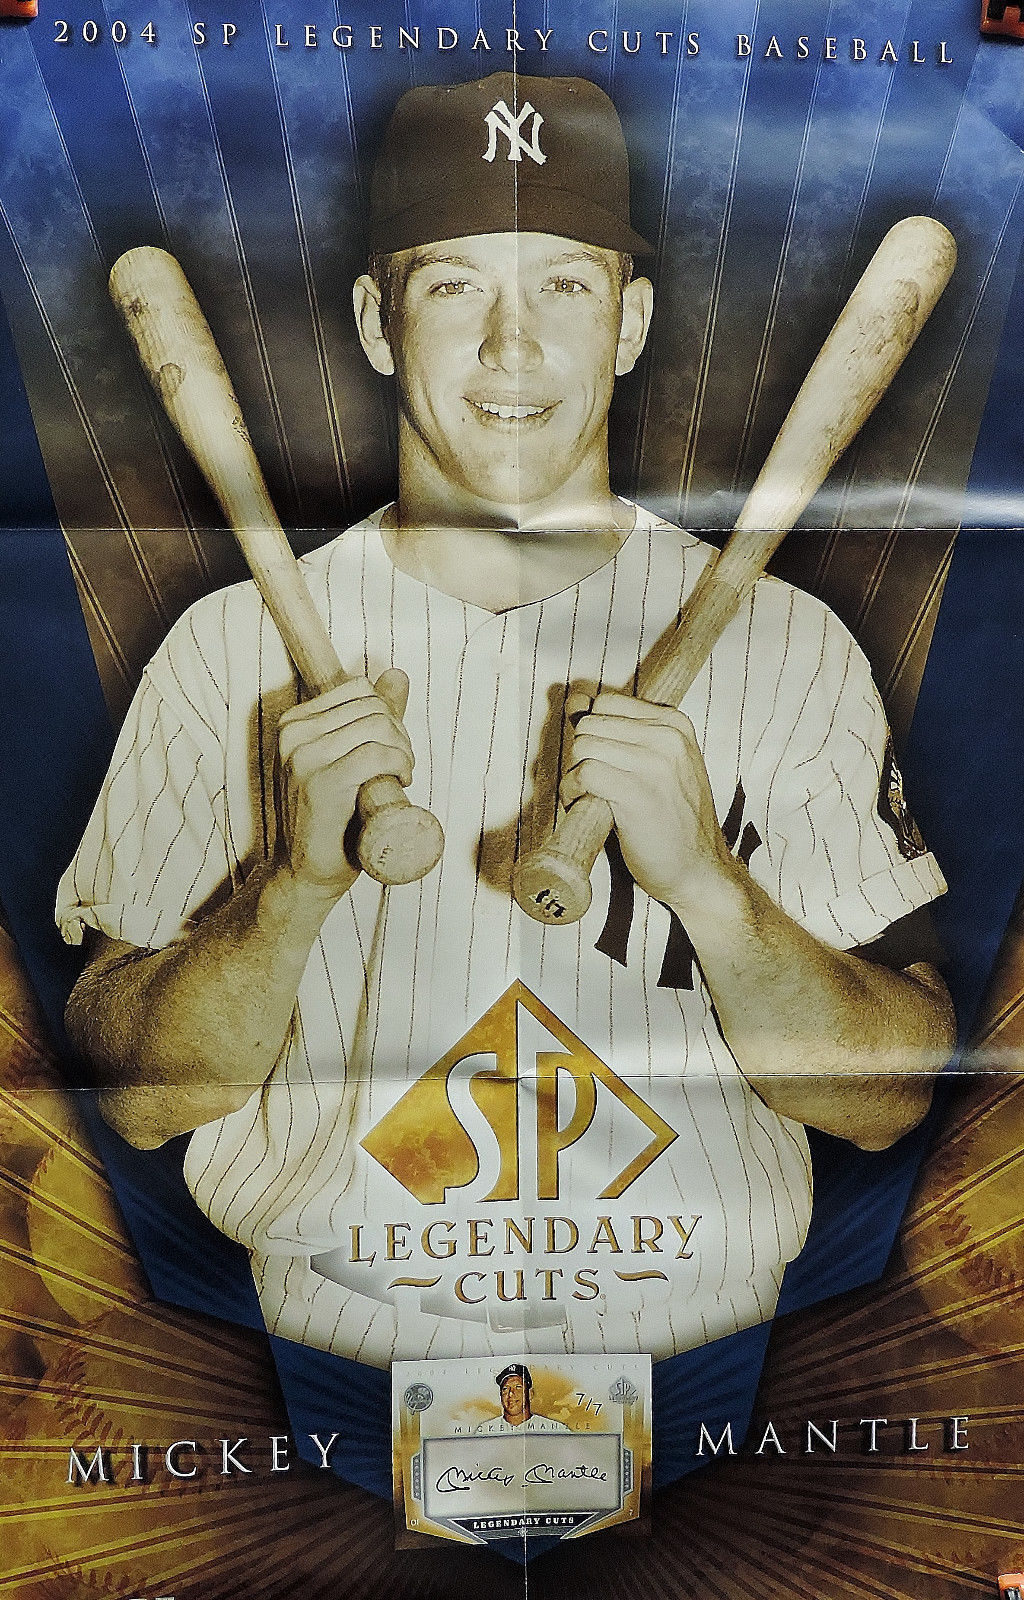 2004 upper deck large poster